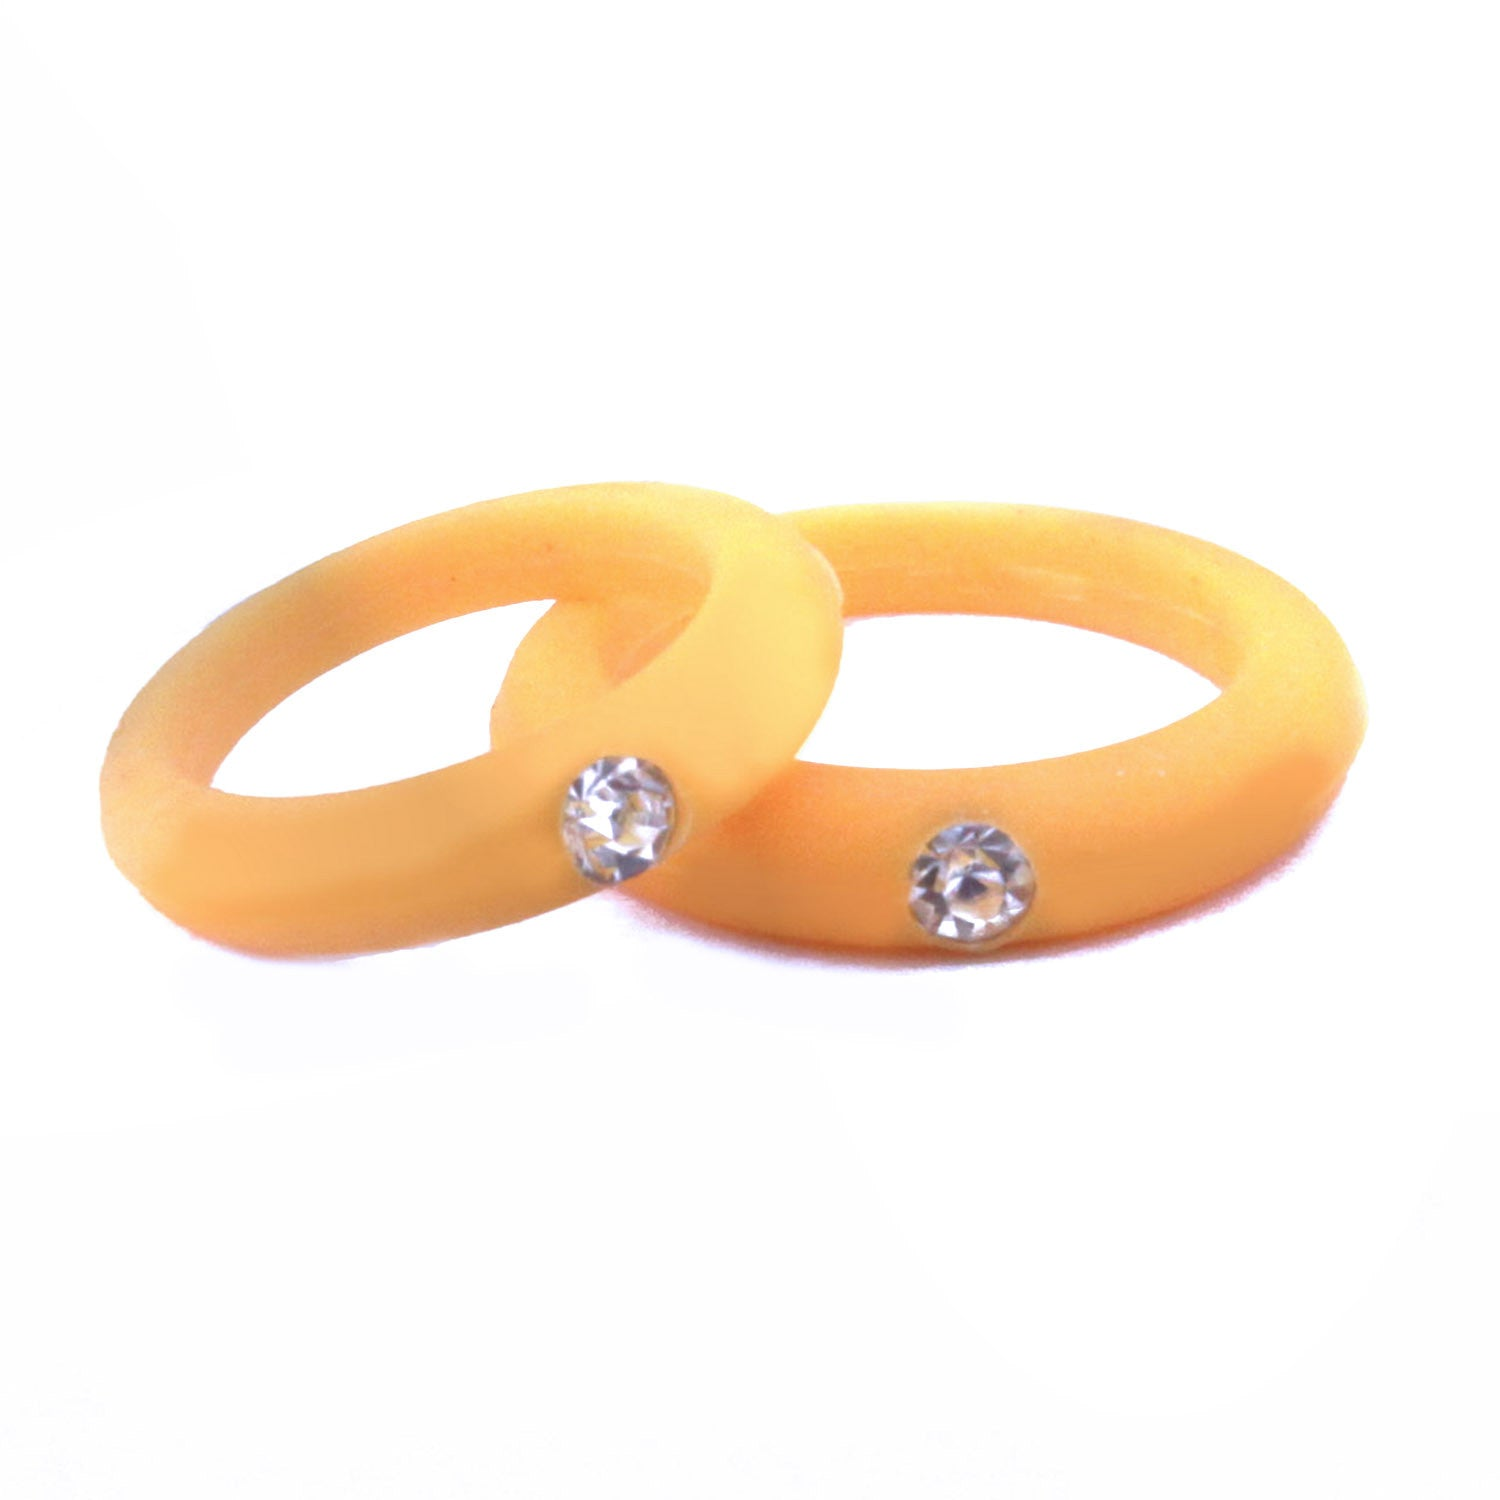 ring women popular silicone rings couple product cool s movement sport environmental men solid round comfortable